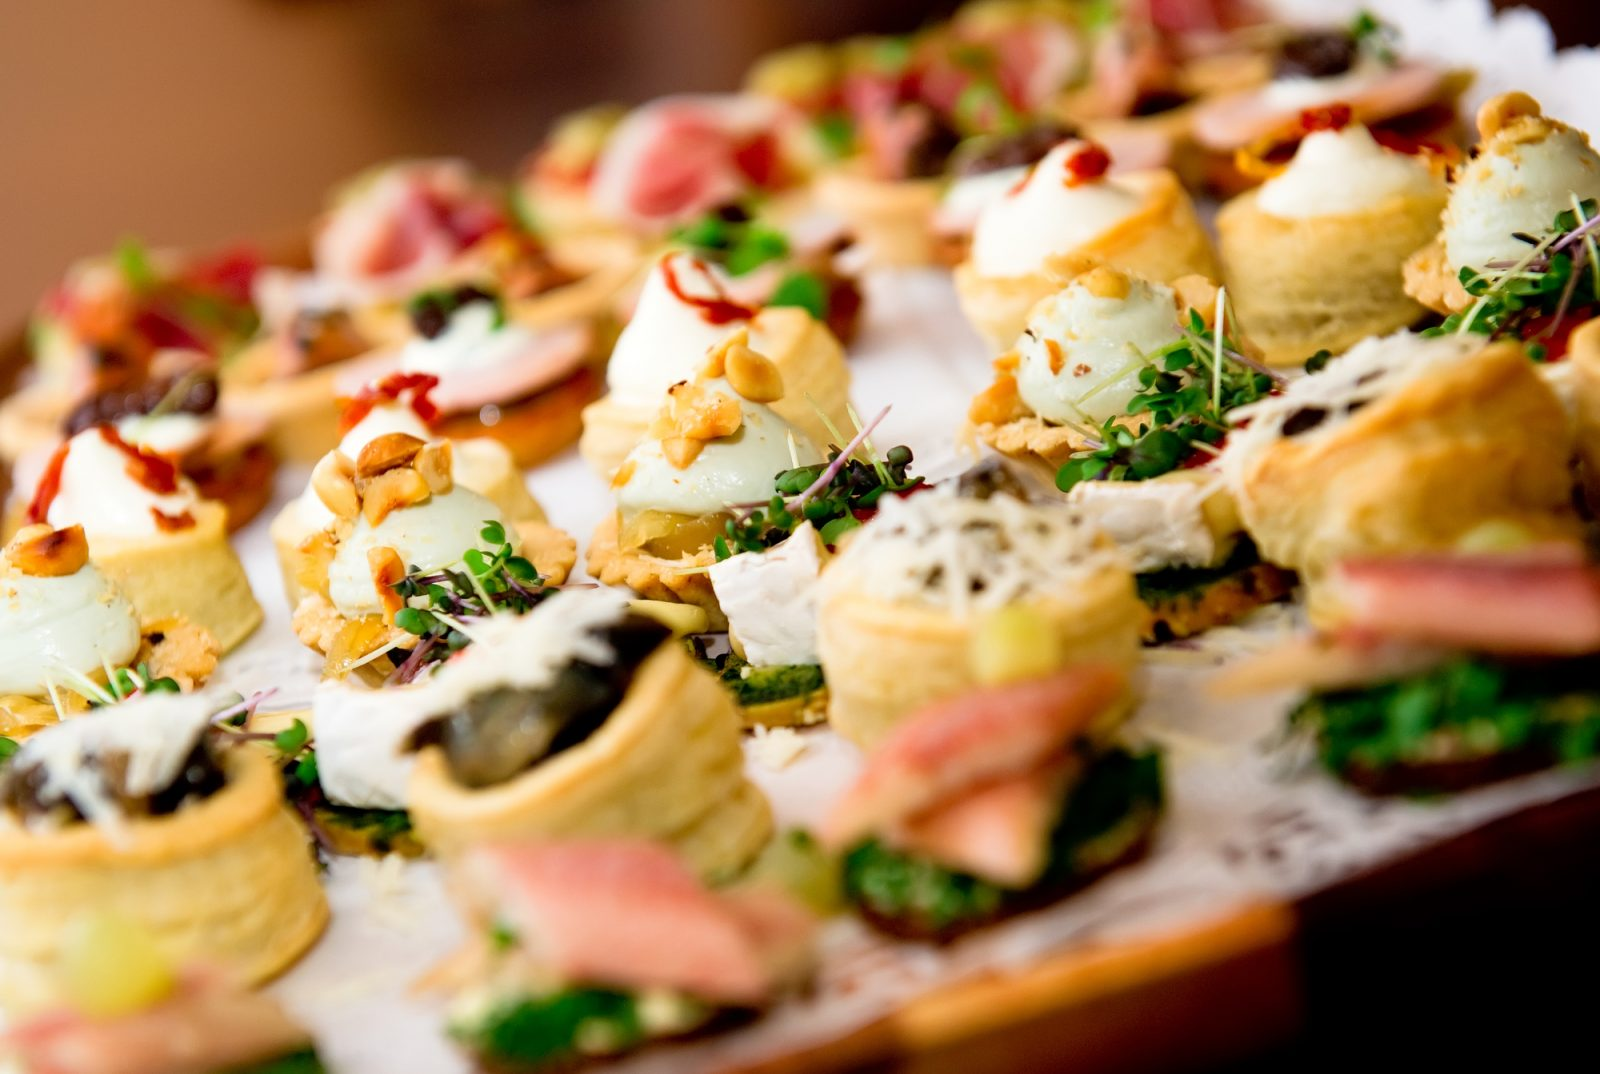 canapés at a networking event